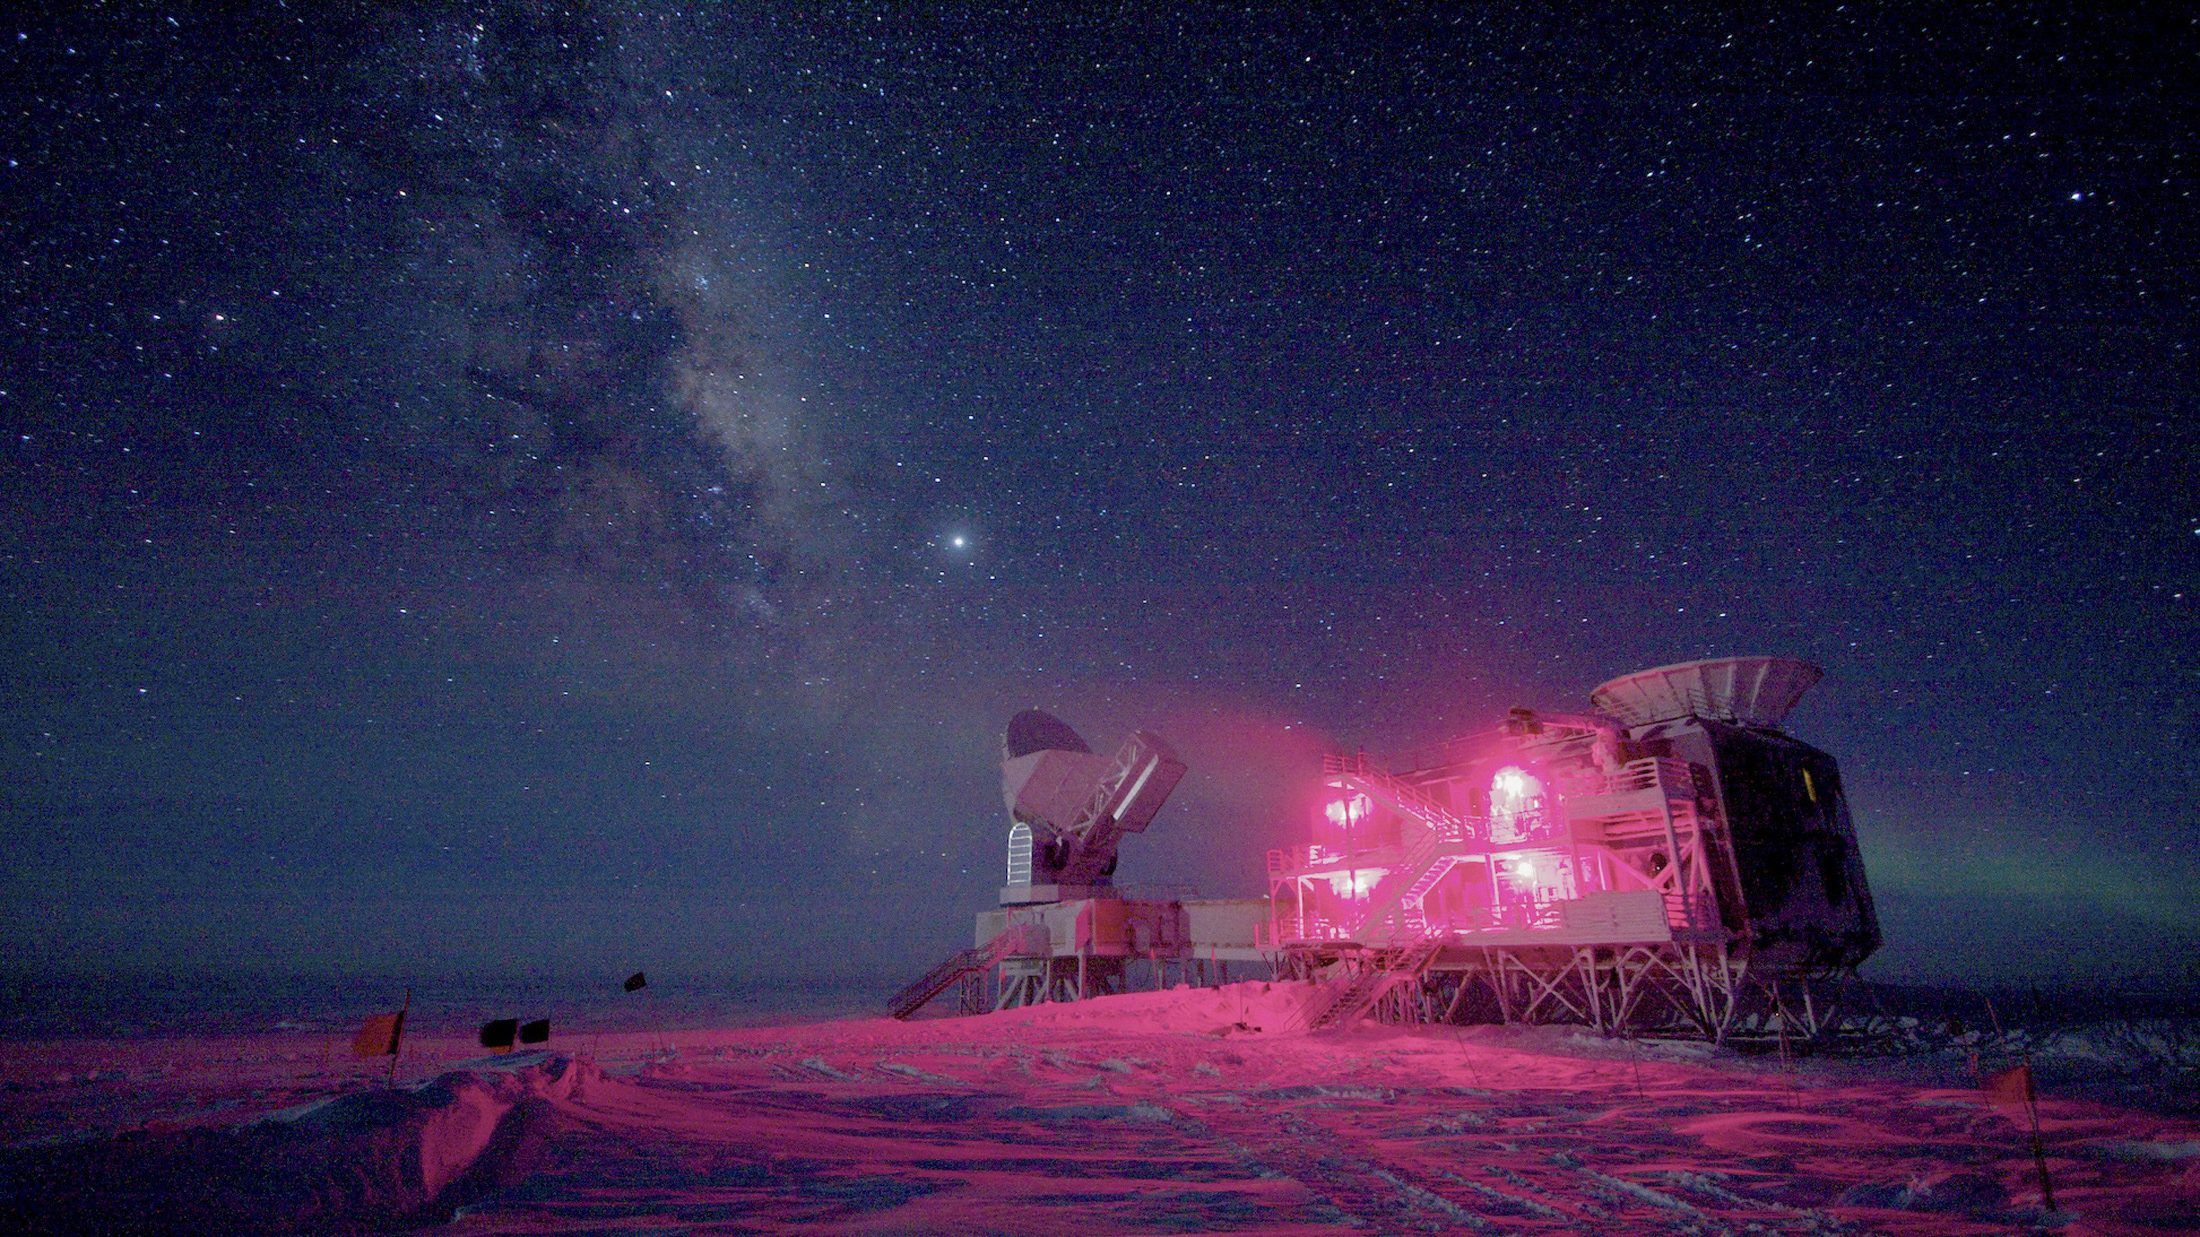 The 10-m (32.8 ft) South Pole Telescope and the BICEP (Background Imaging of Cosmic Extragalactic Polarization) Telescope at Amundsen-Scott South Pole Station is seen against the night sky with the Milky Way in this National Science Foundation picture taken in August 2008. Astronomers announced on March 17, 2014 that they had discovered what many consider the holy grail of their field: ripples in the fabric of space-time that are echoes of the massive expansion of the universe that took place just after the Big Bang.  The gravitational waves were detected by the BICEP telescope.